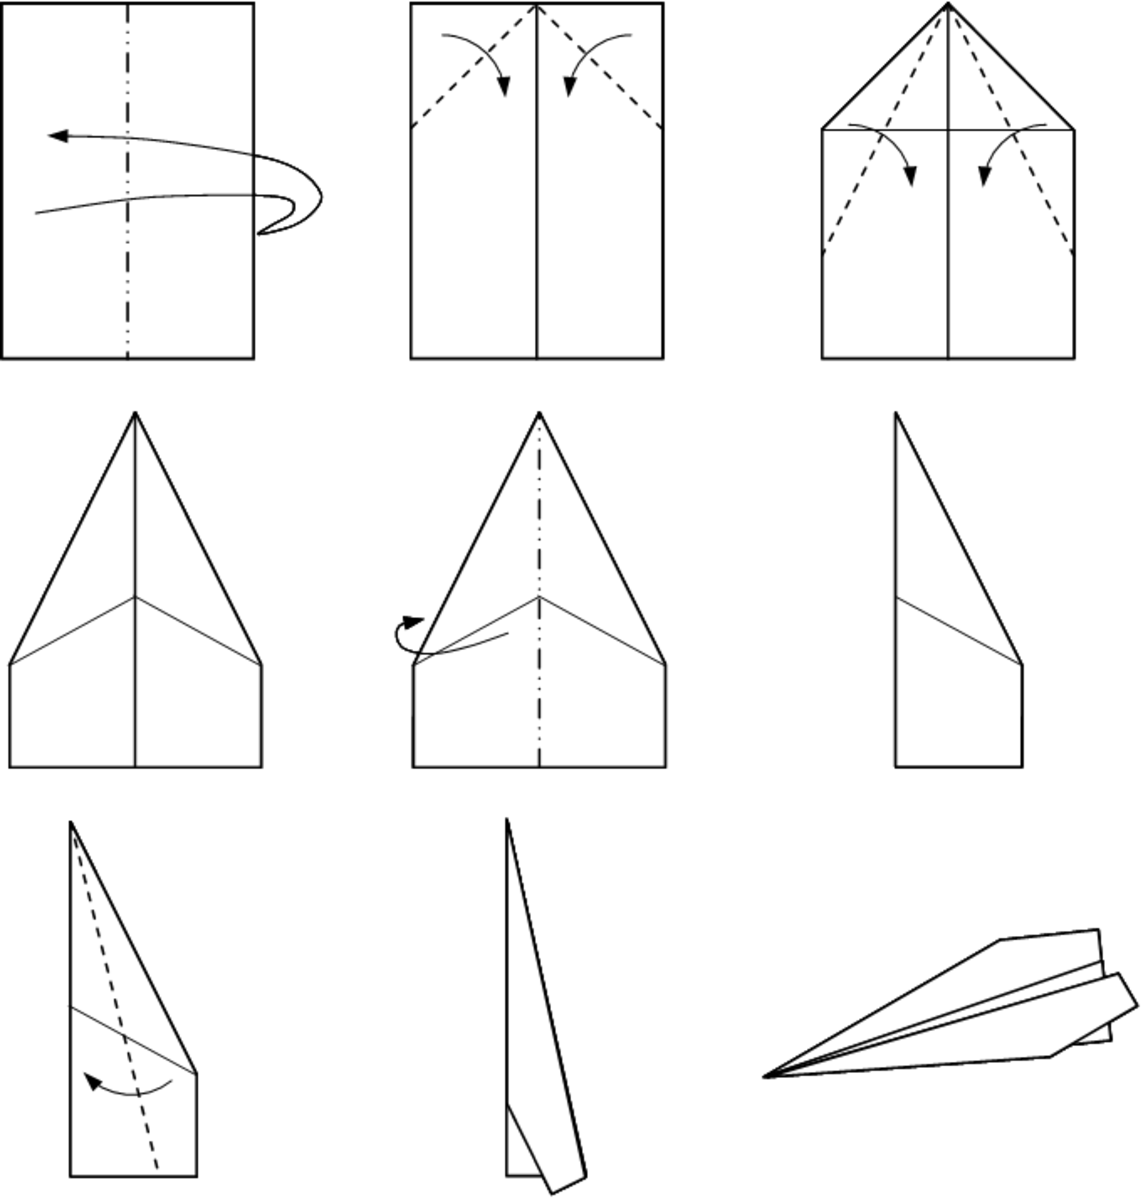 Another way to fold a paper airplane that will fly.